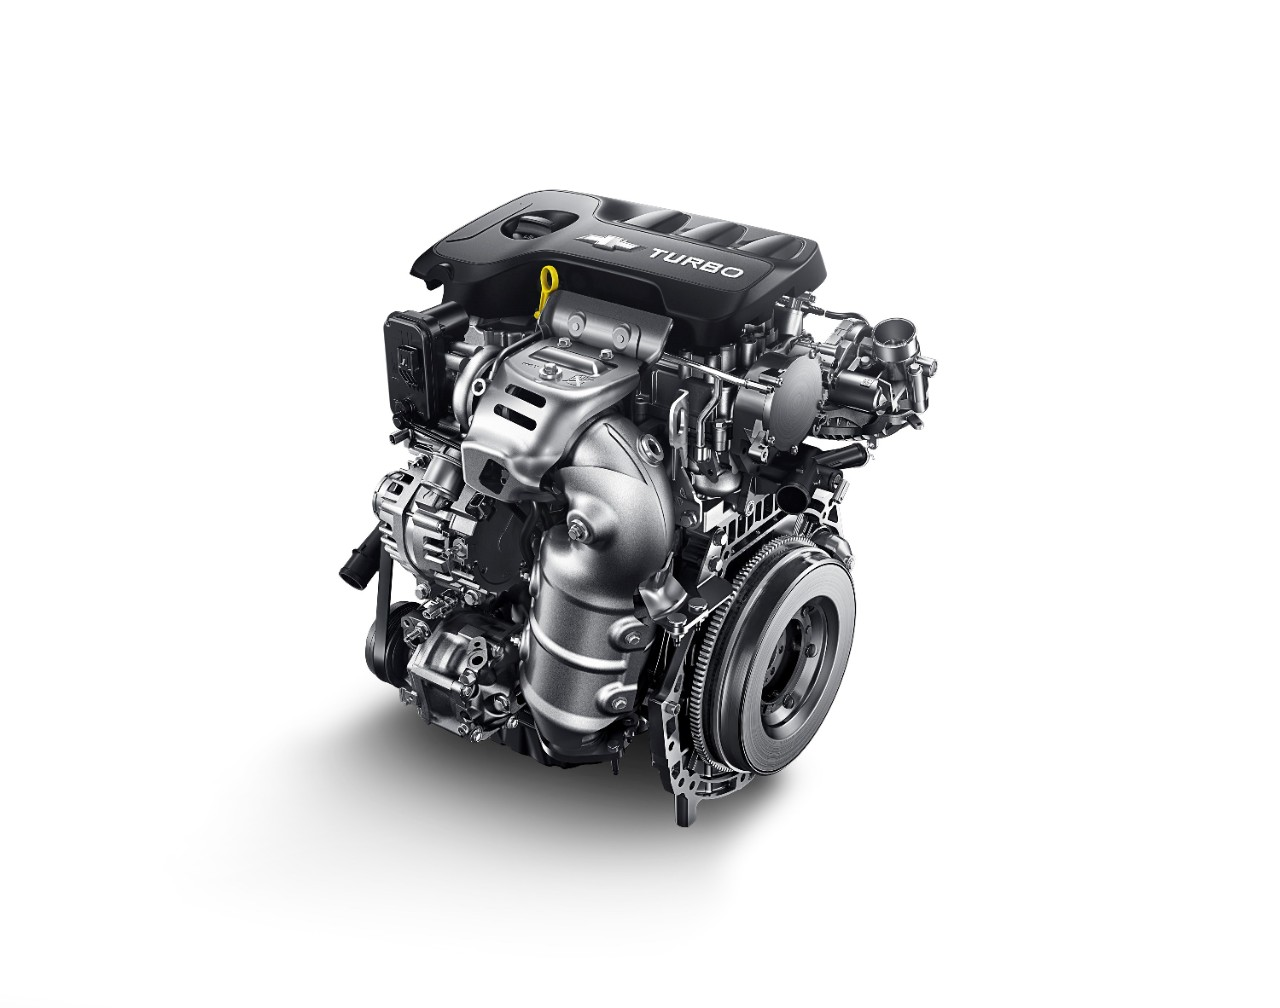 General Motors China Reveals New ECOTEC 1.0T and 1.3T Engines - The News Wheel